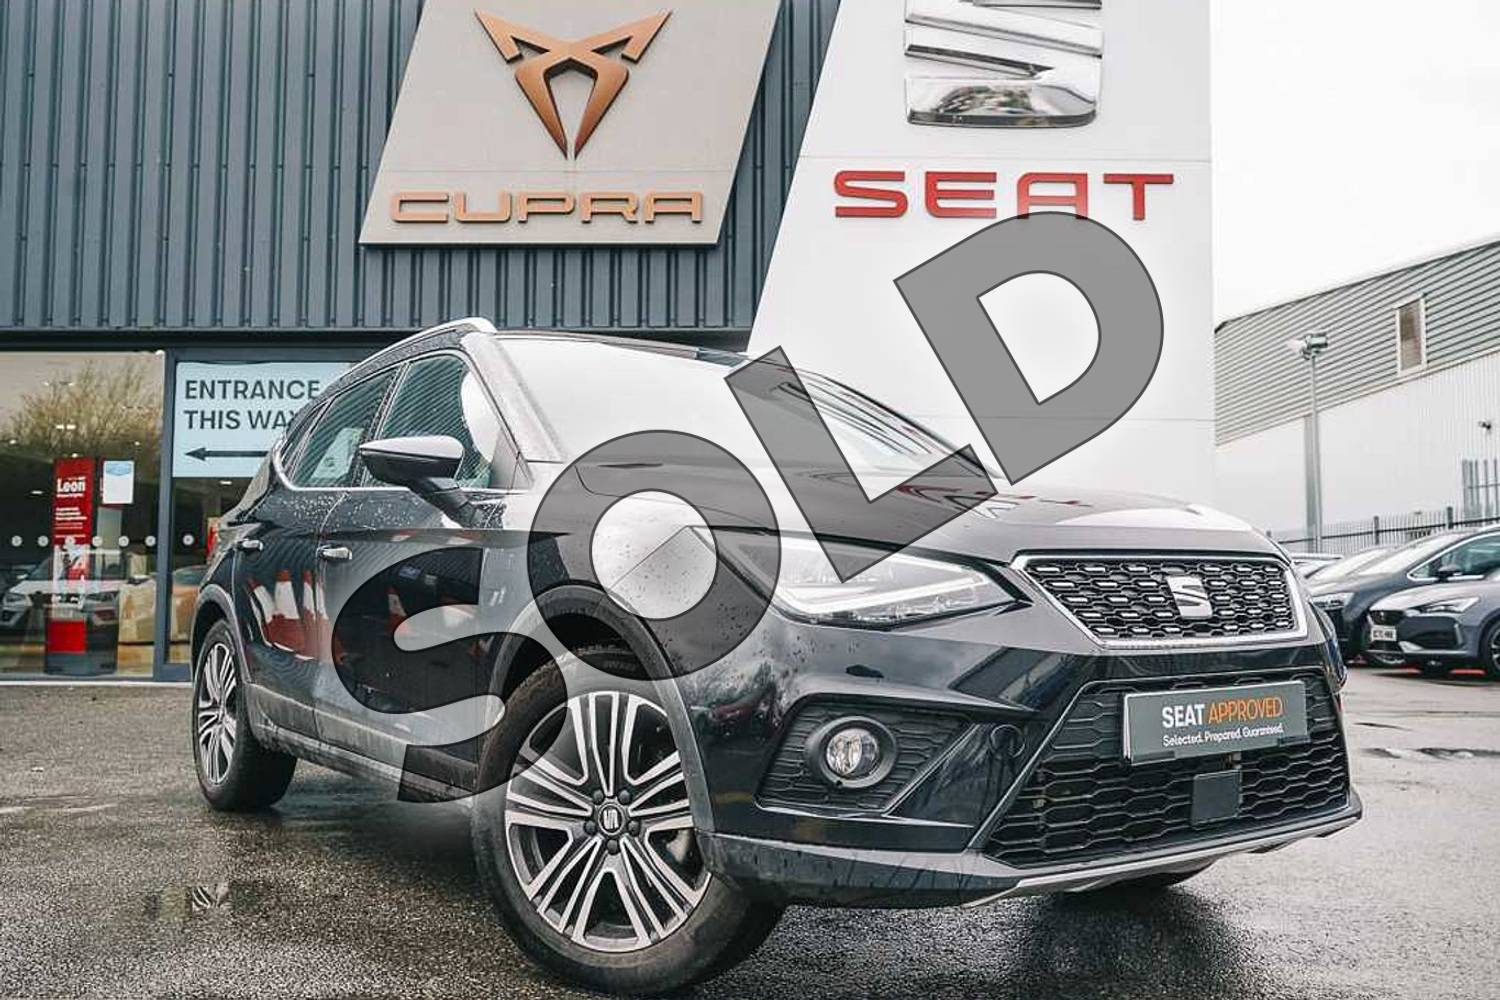 2020 SEAT Arona Hatchback 1.0 TSI 115 Xcellence (EZ) 5dr DSG in Black at Listers SEAT Coventry